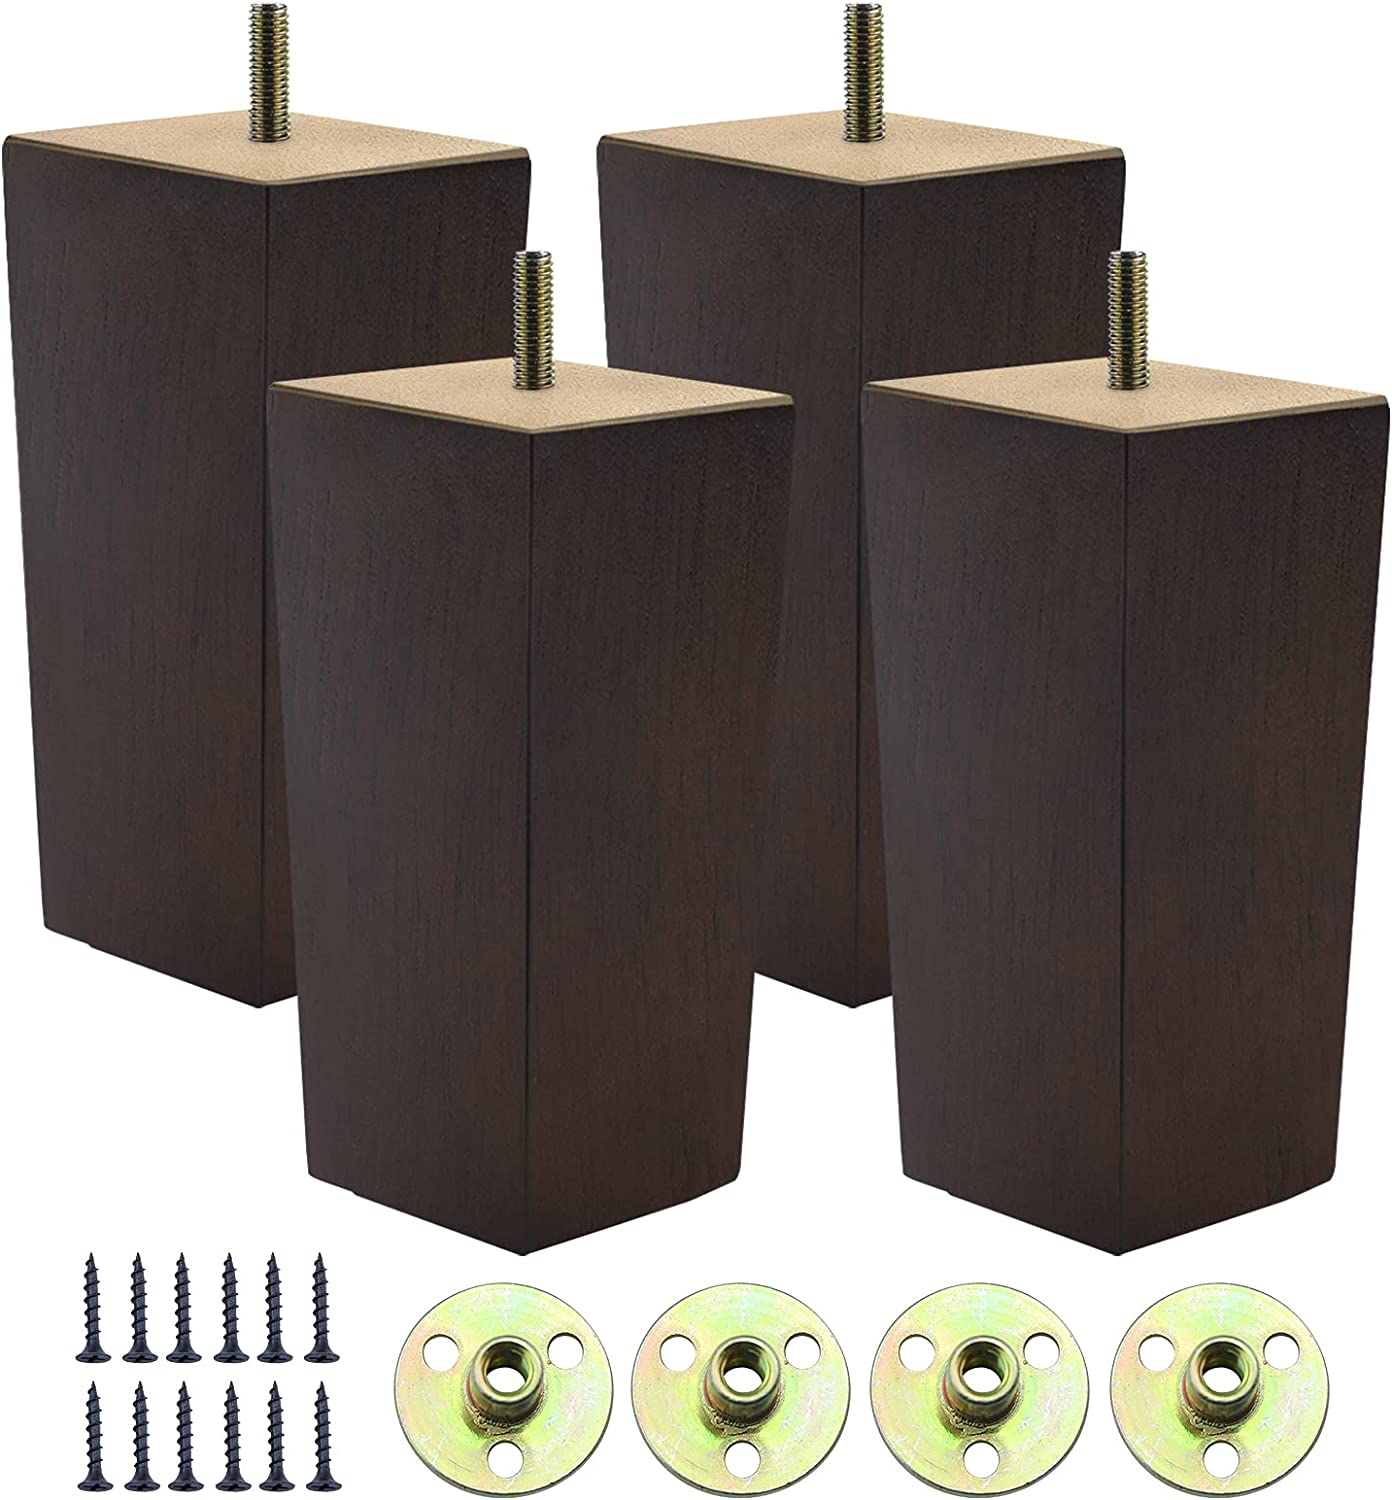 Couch Legs for Furniture Set of 4, Pyramid Square Wooden Furniture Legs 6 Inch, Mid Century Modern Brown Color Sofa Legs Replacement for Ottoman, Chair, Dresser, Coffee Table, Armchair, Settee